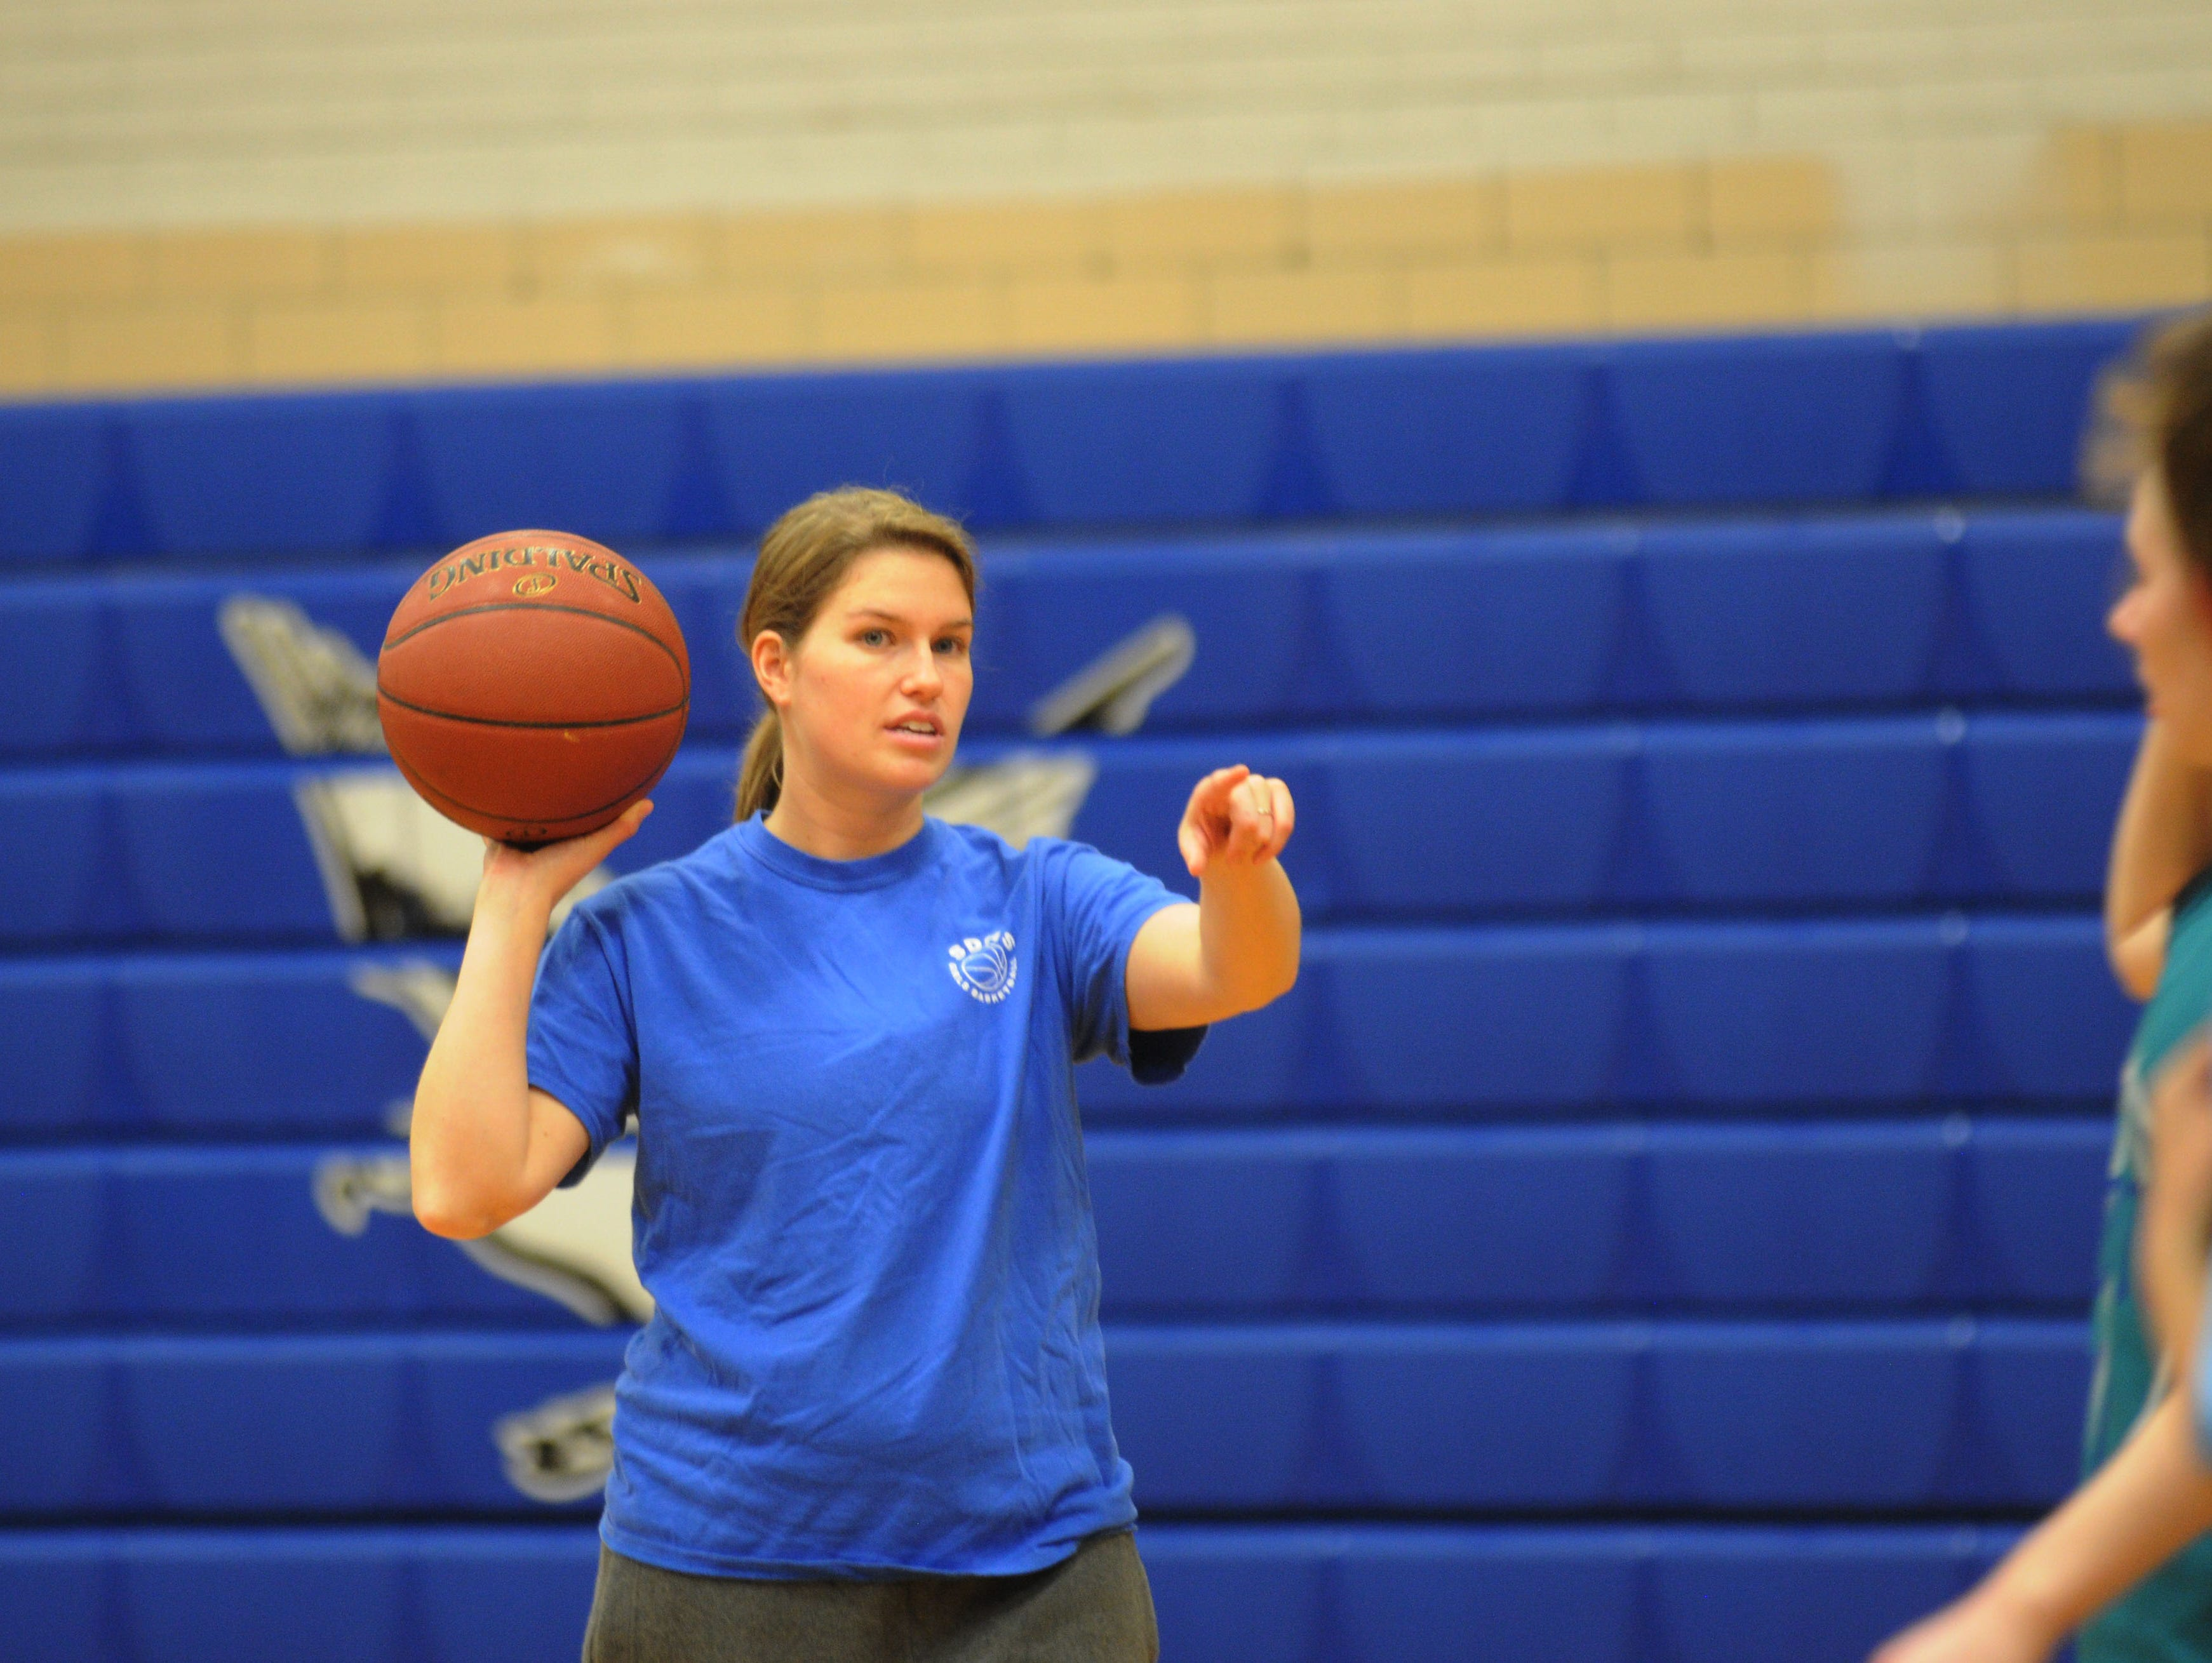 After three years of assisting, Kate Coates takes over as head coach of the Stephen Decatur girls basketball team.